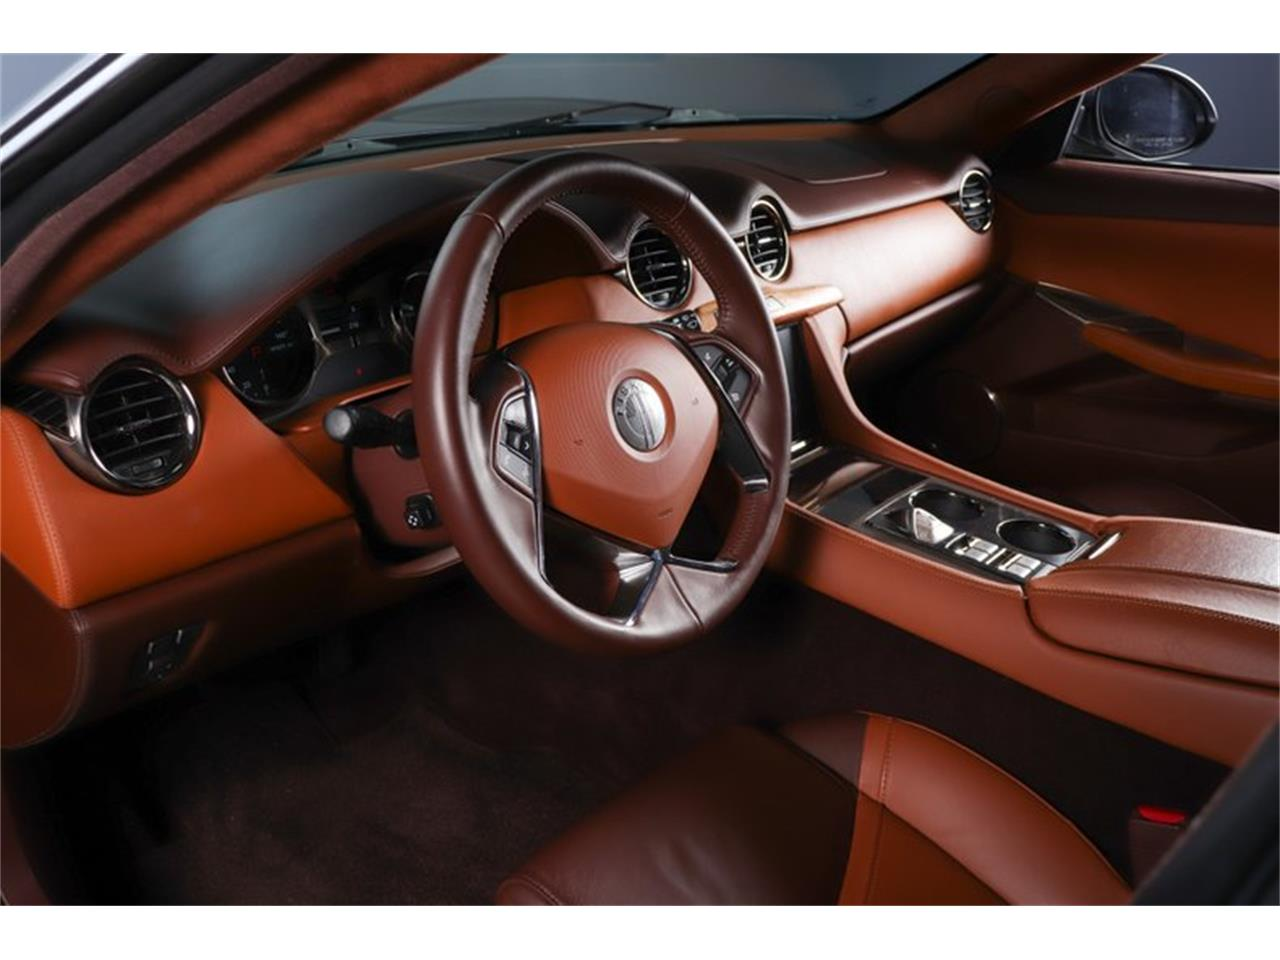 2012 Fisker Karma for sale in New Hyde Park, NY – photo 24